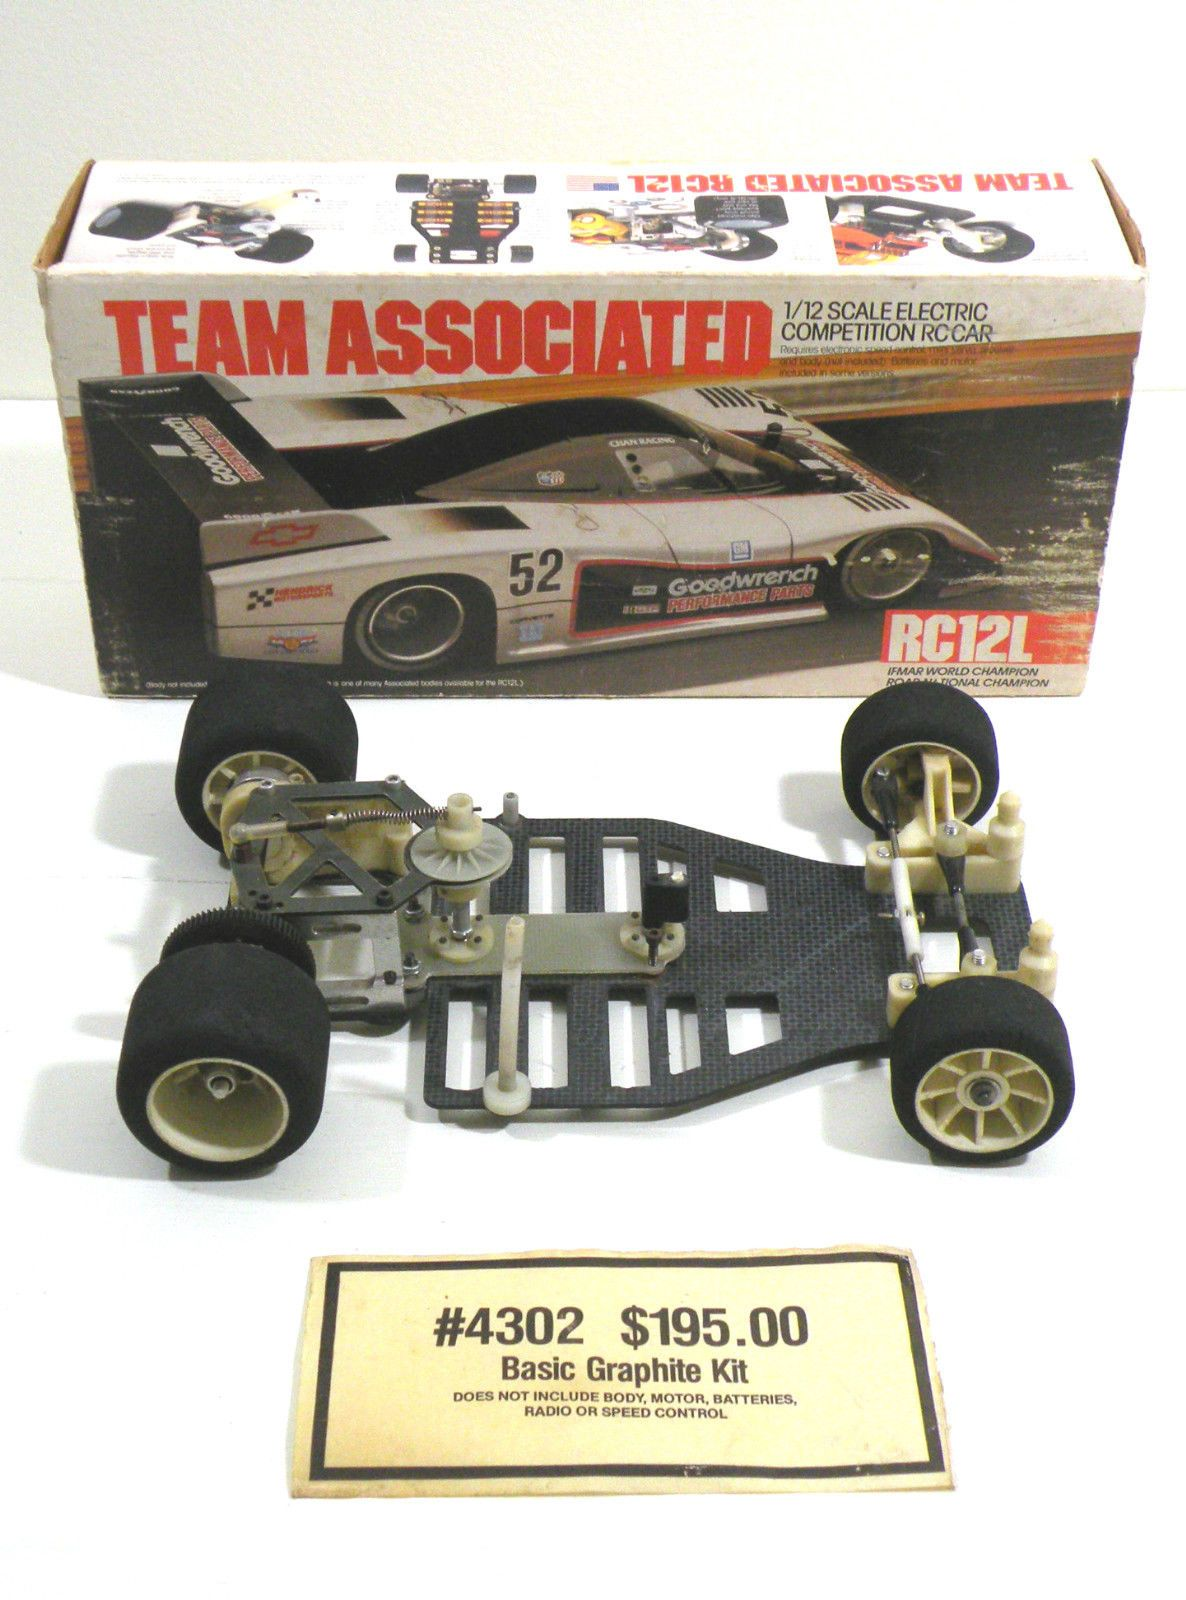 Vintage Team Associated RC12L 1 12 Scale RC Car eBay